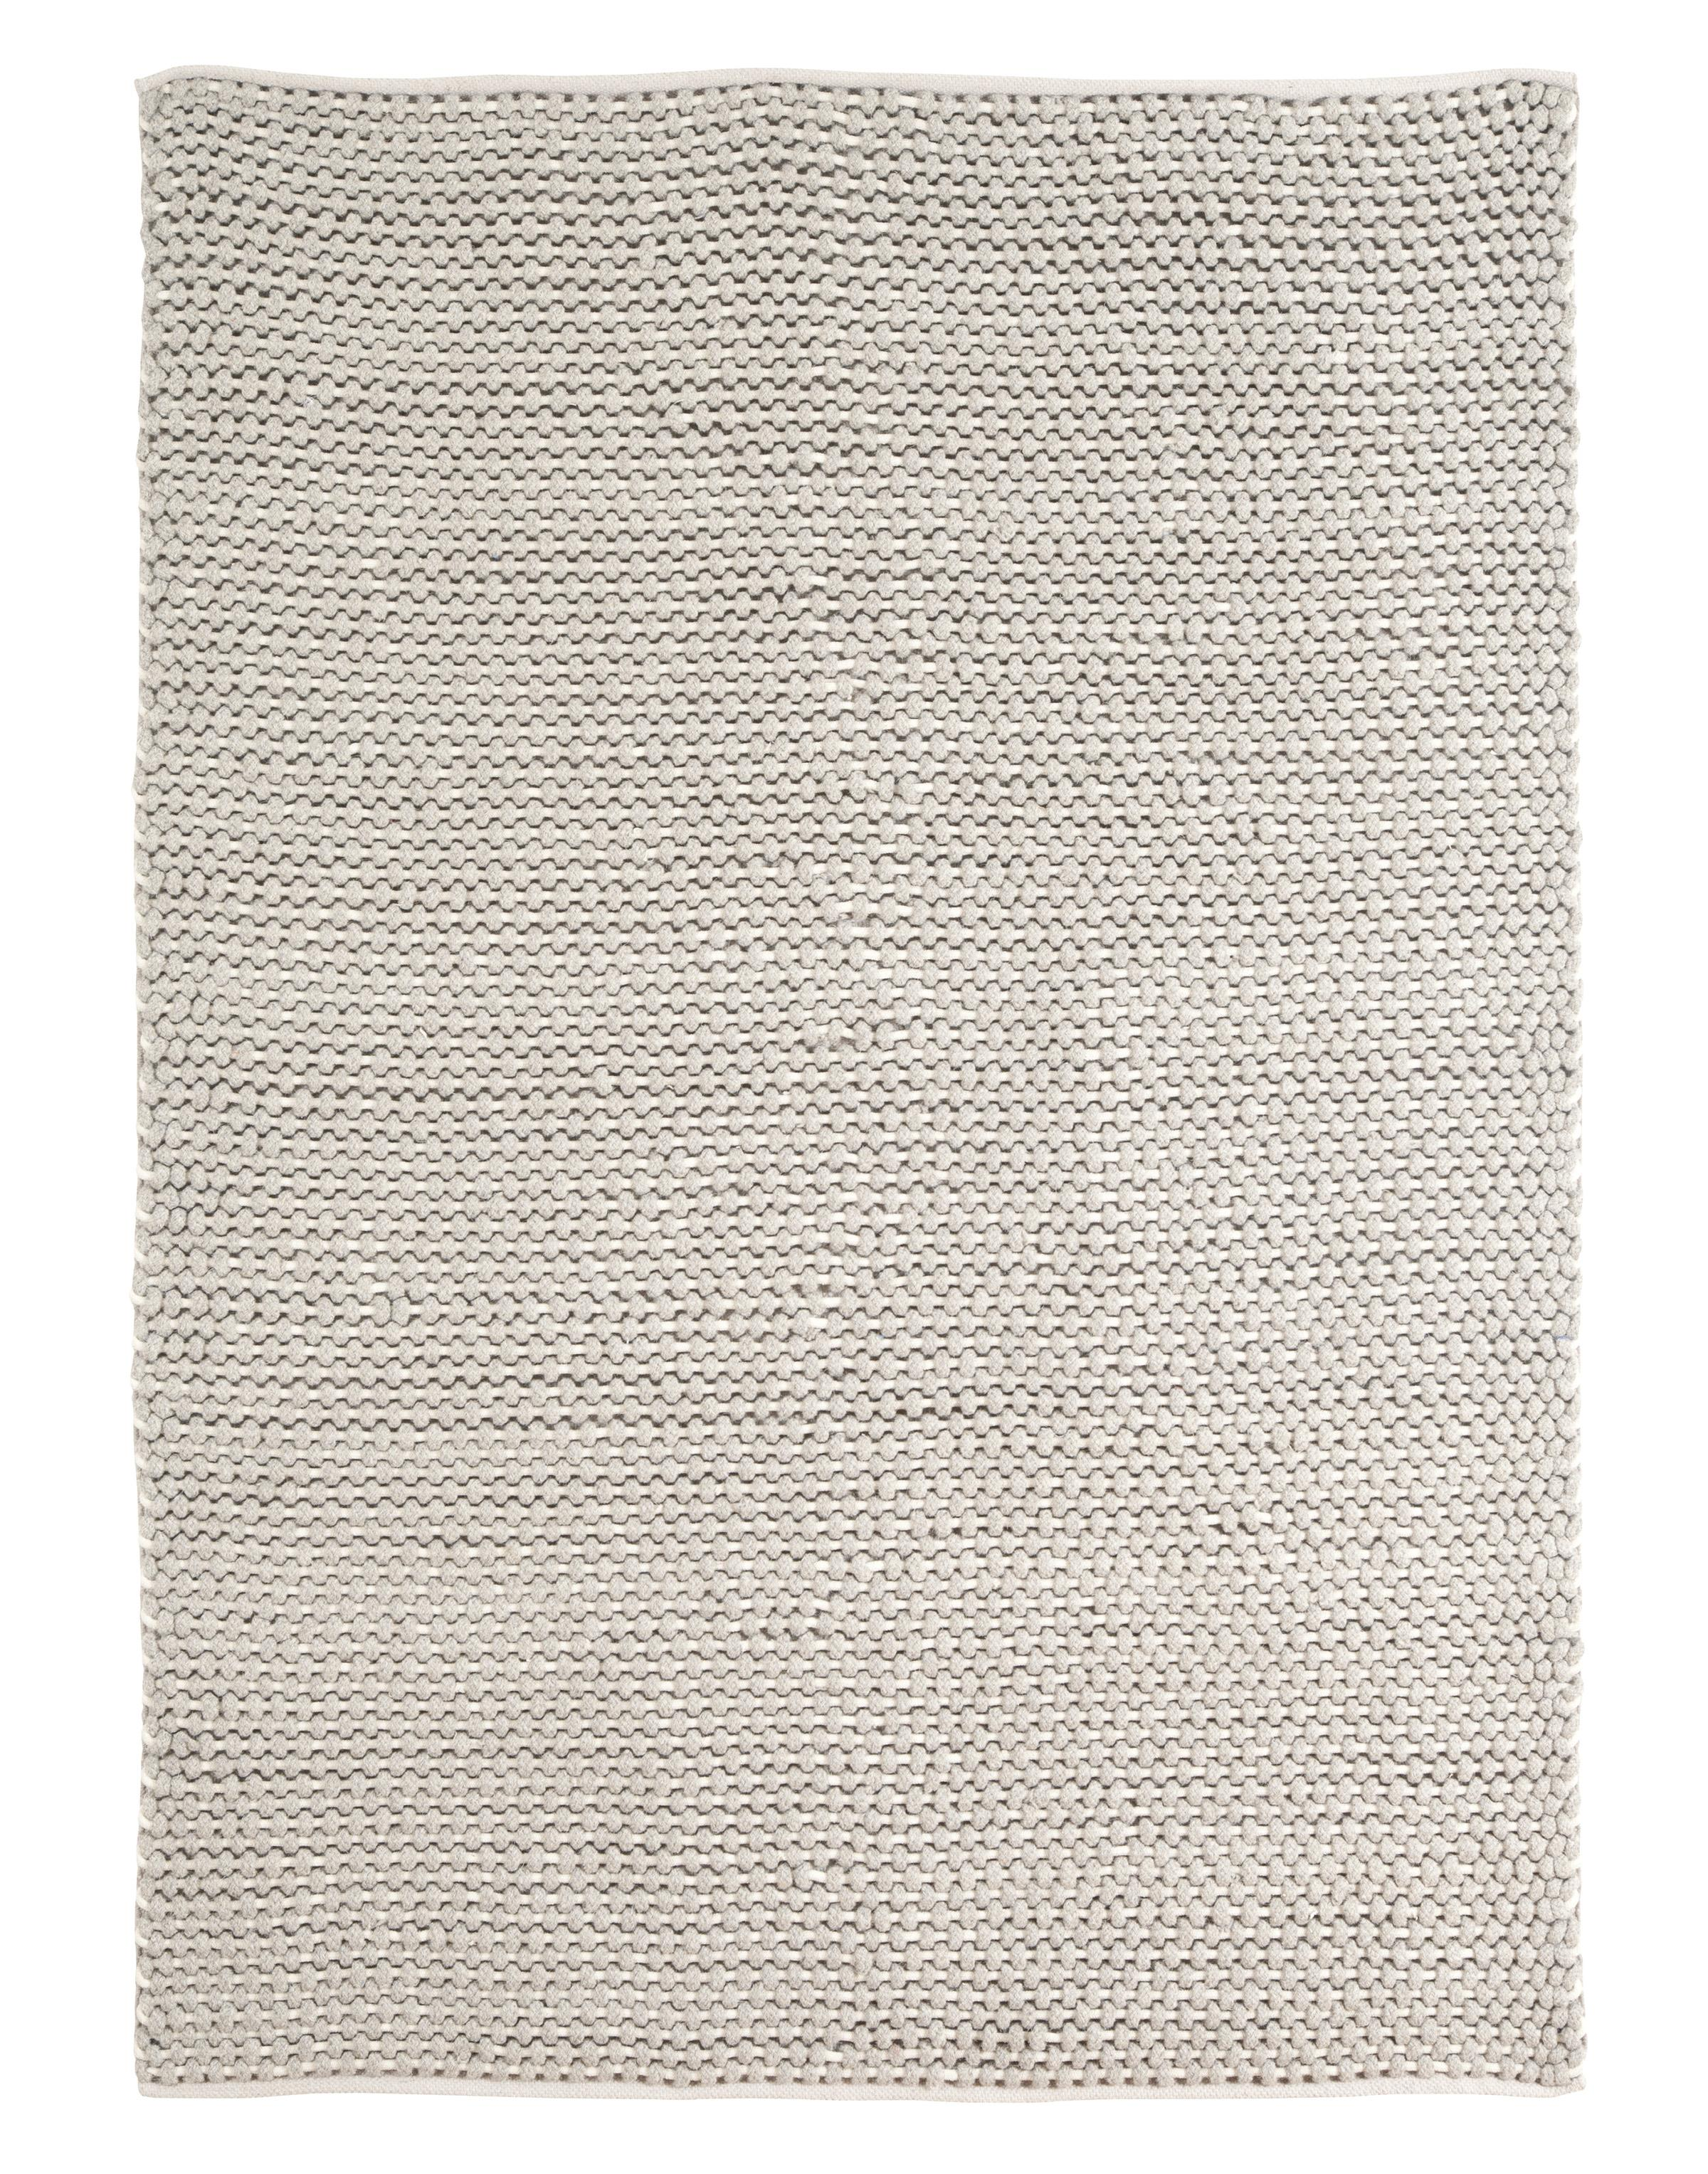 Signature Design by Ashley Casual Area Rugs Handwoven - Gray Medium Rug - Item Number: R401422